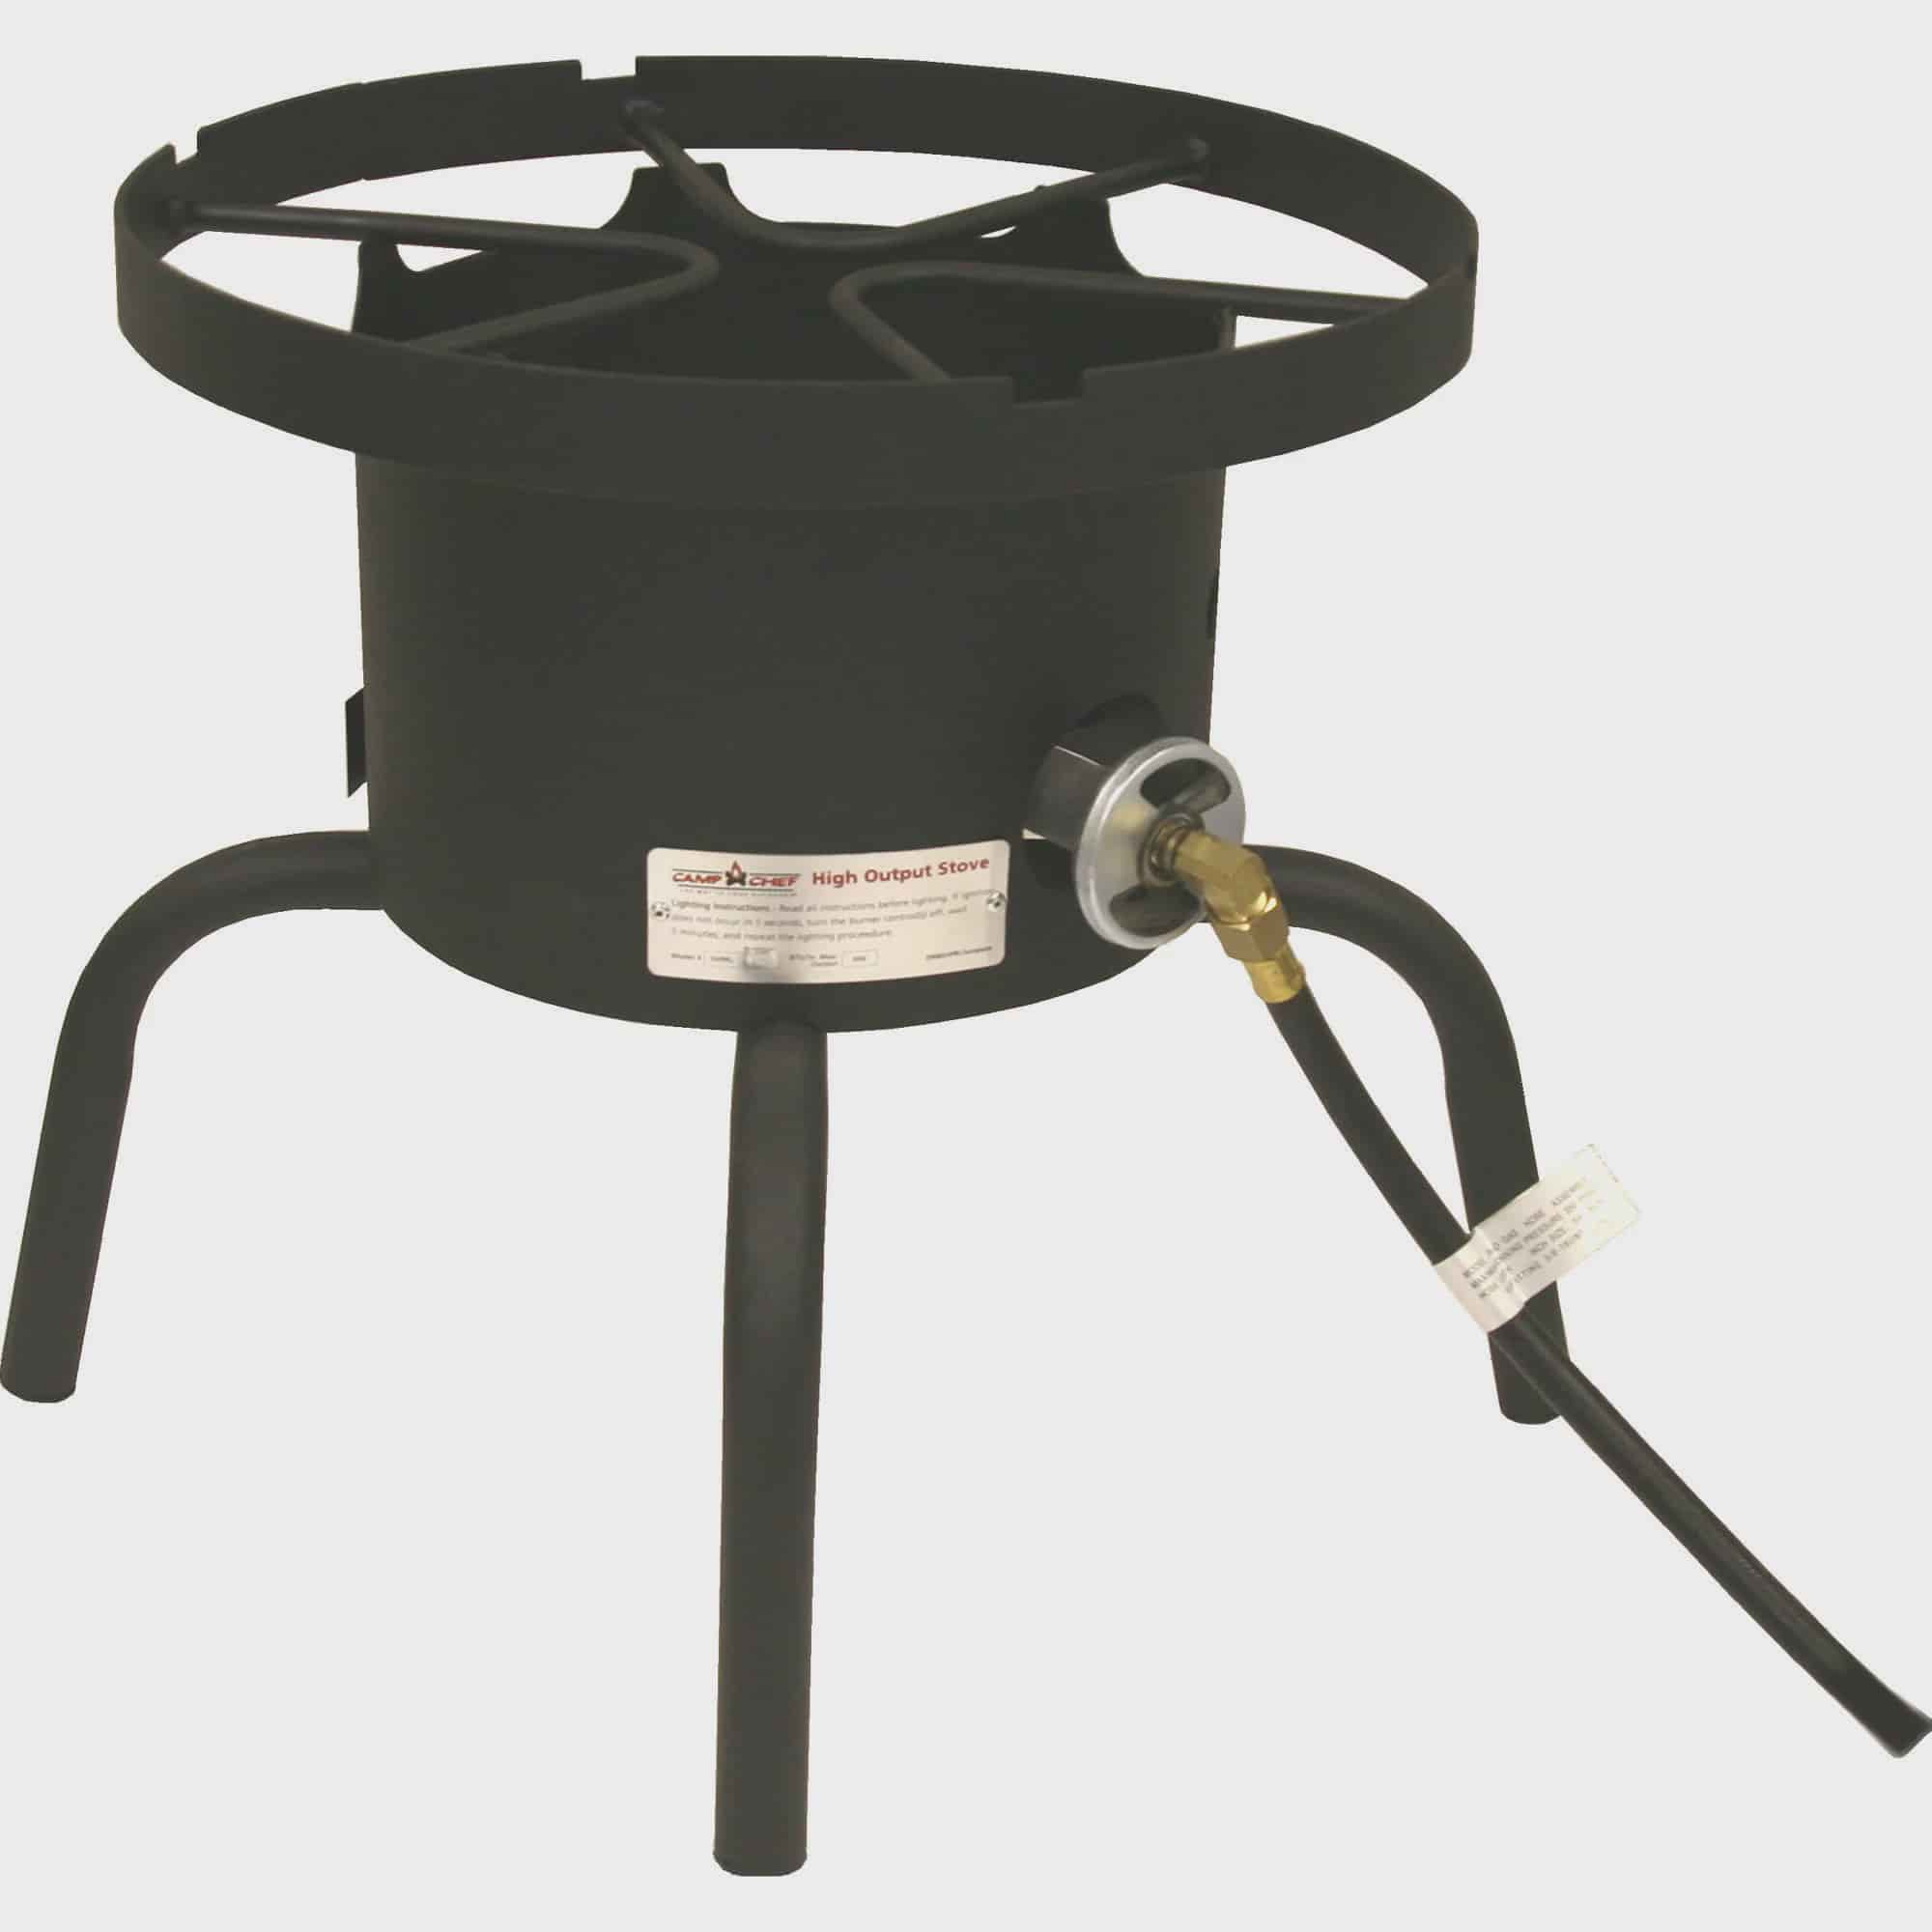 Camp Chef Single burner 60,000 BTU Camp Stove SHP-RL by Generic